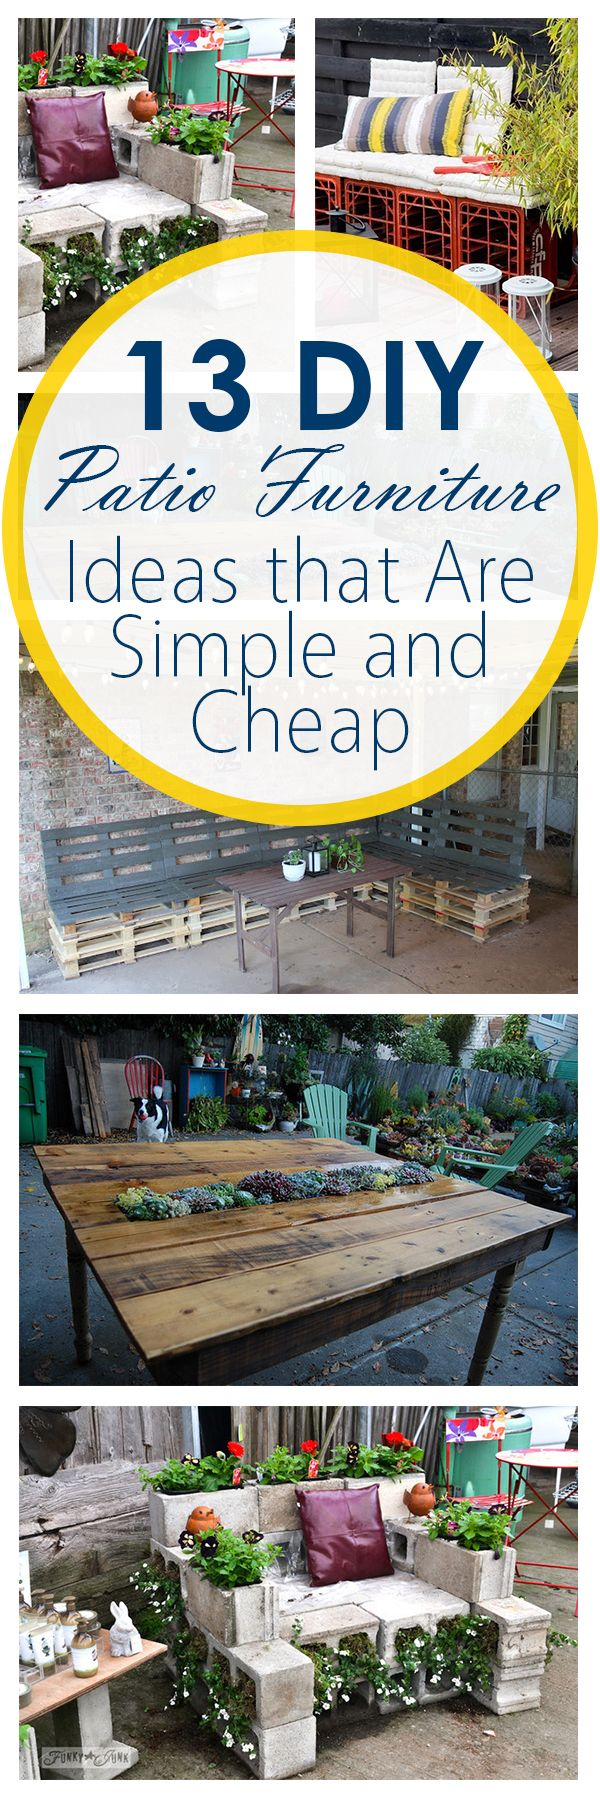 17 Best ideas about Cheap Patio Furniture on Pinterest | Diy patio  furniture cheap, Cheap outdoor cushions and Cheap patio furniture sets - 17 Best Ideas About Cheap Patio Furniture On Pinterest Diy Patio